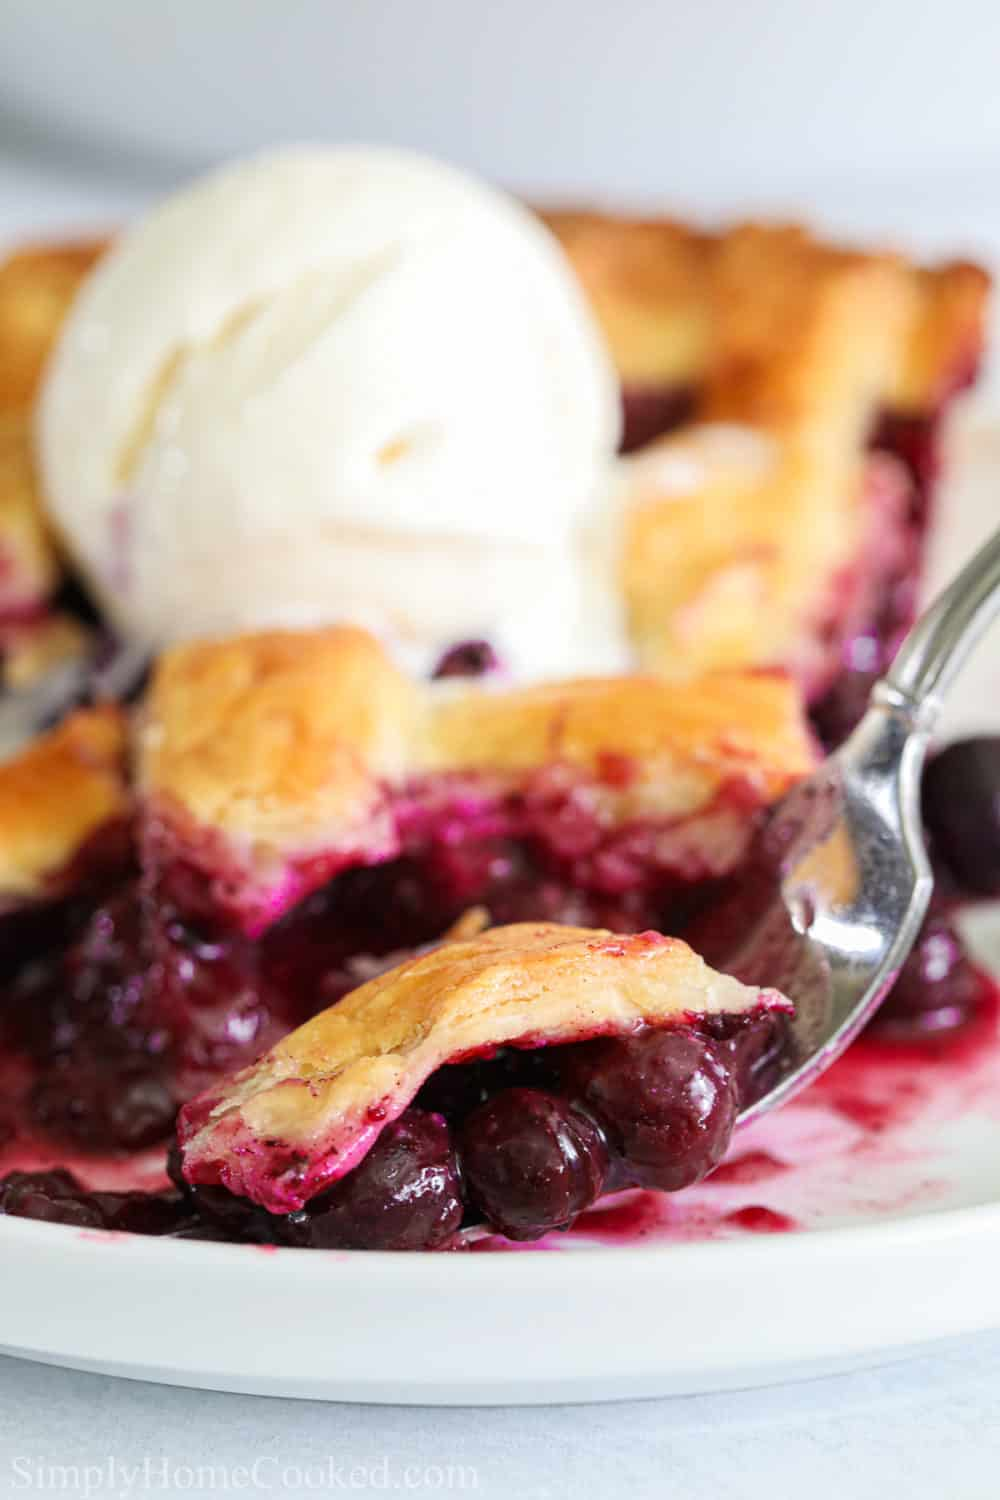 close up image of homemade blueberry pie sliced